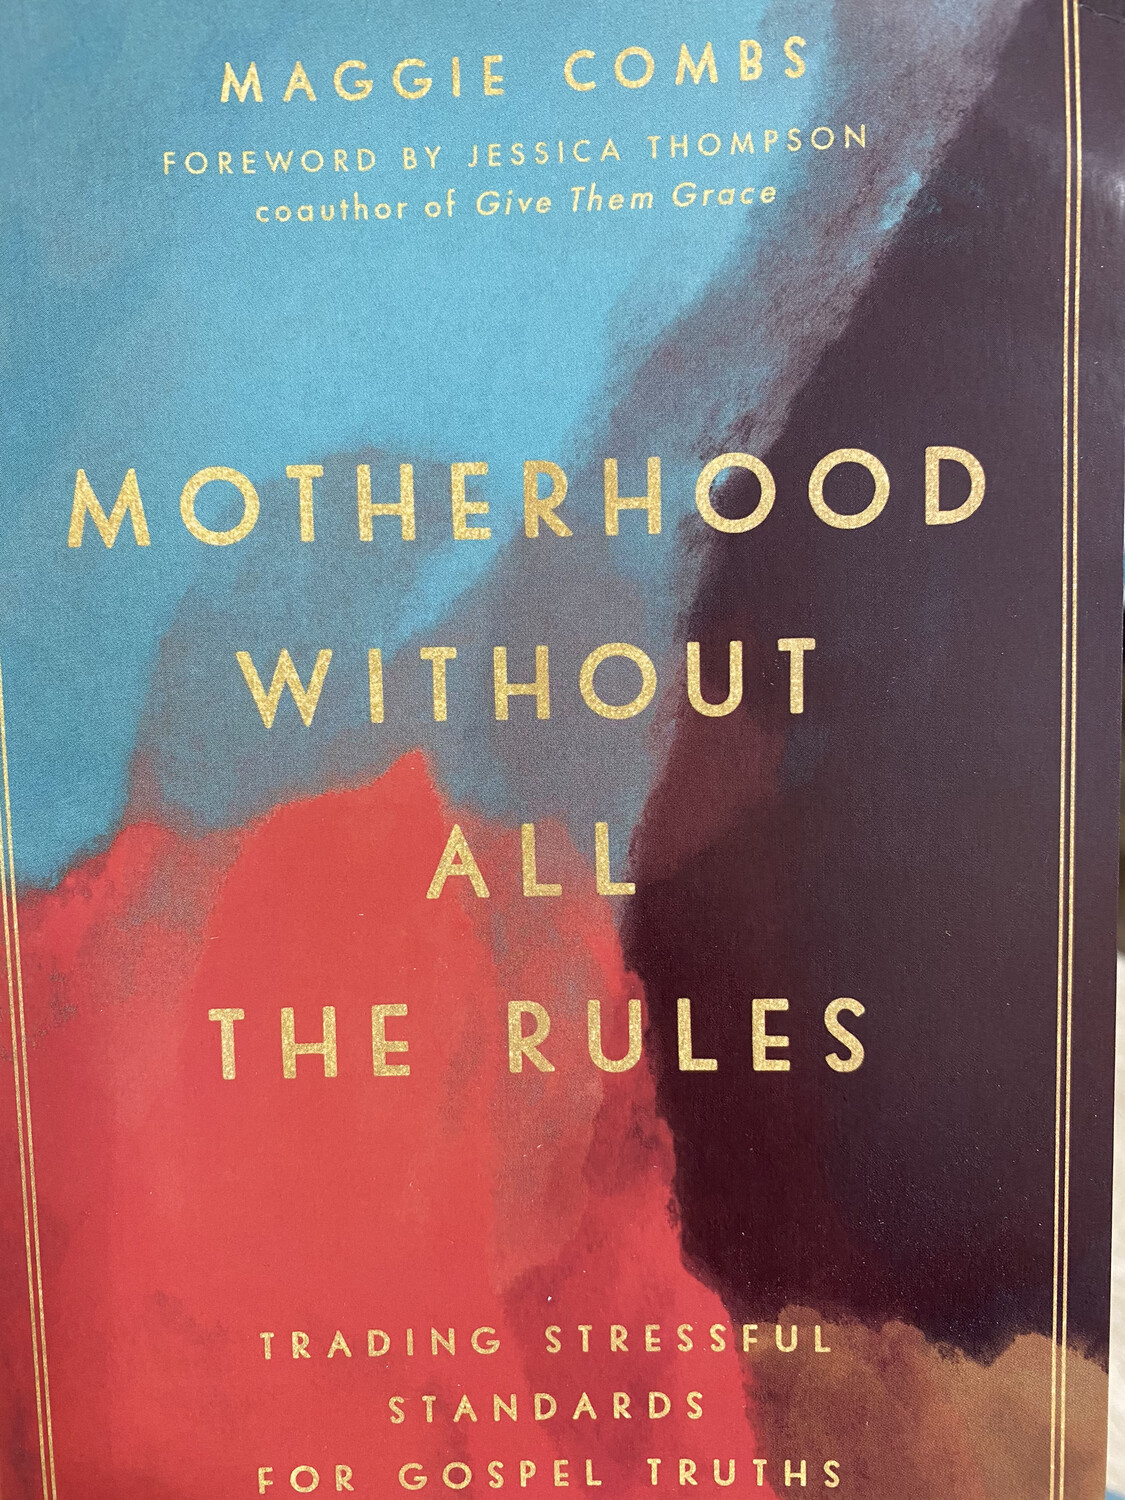 COMBS, Motherhood Without All The Rules